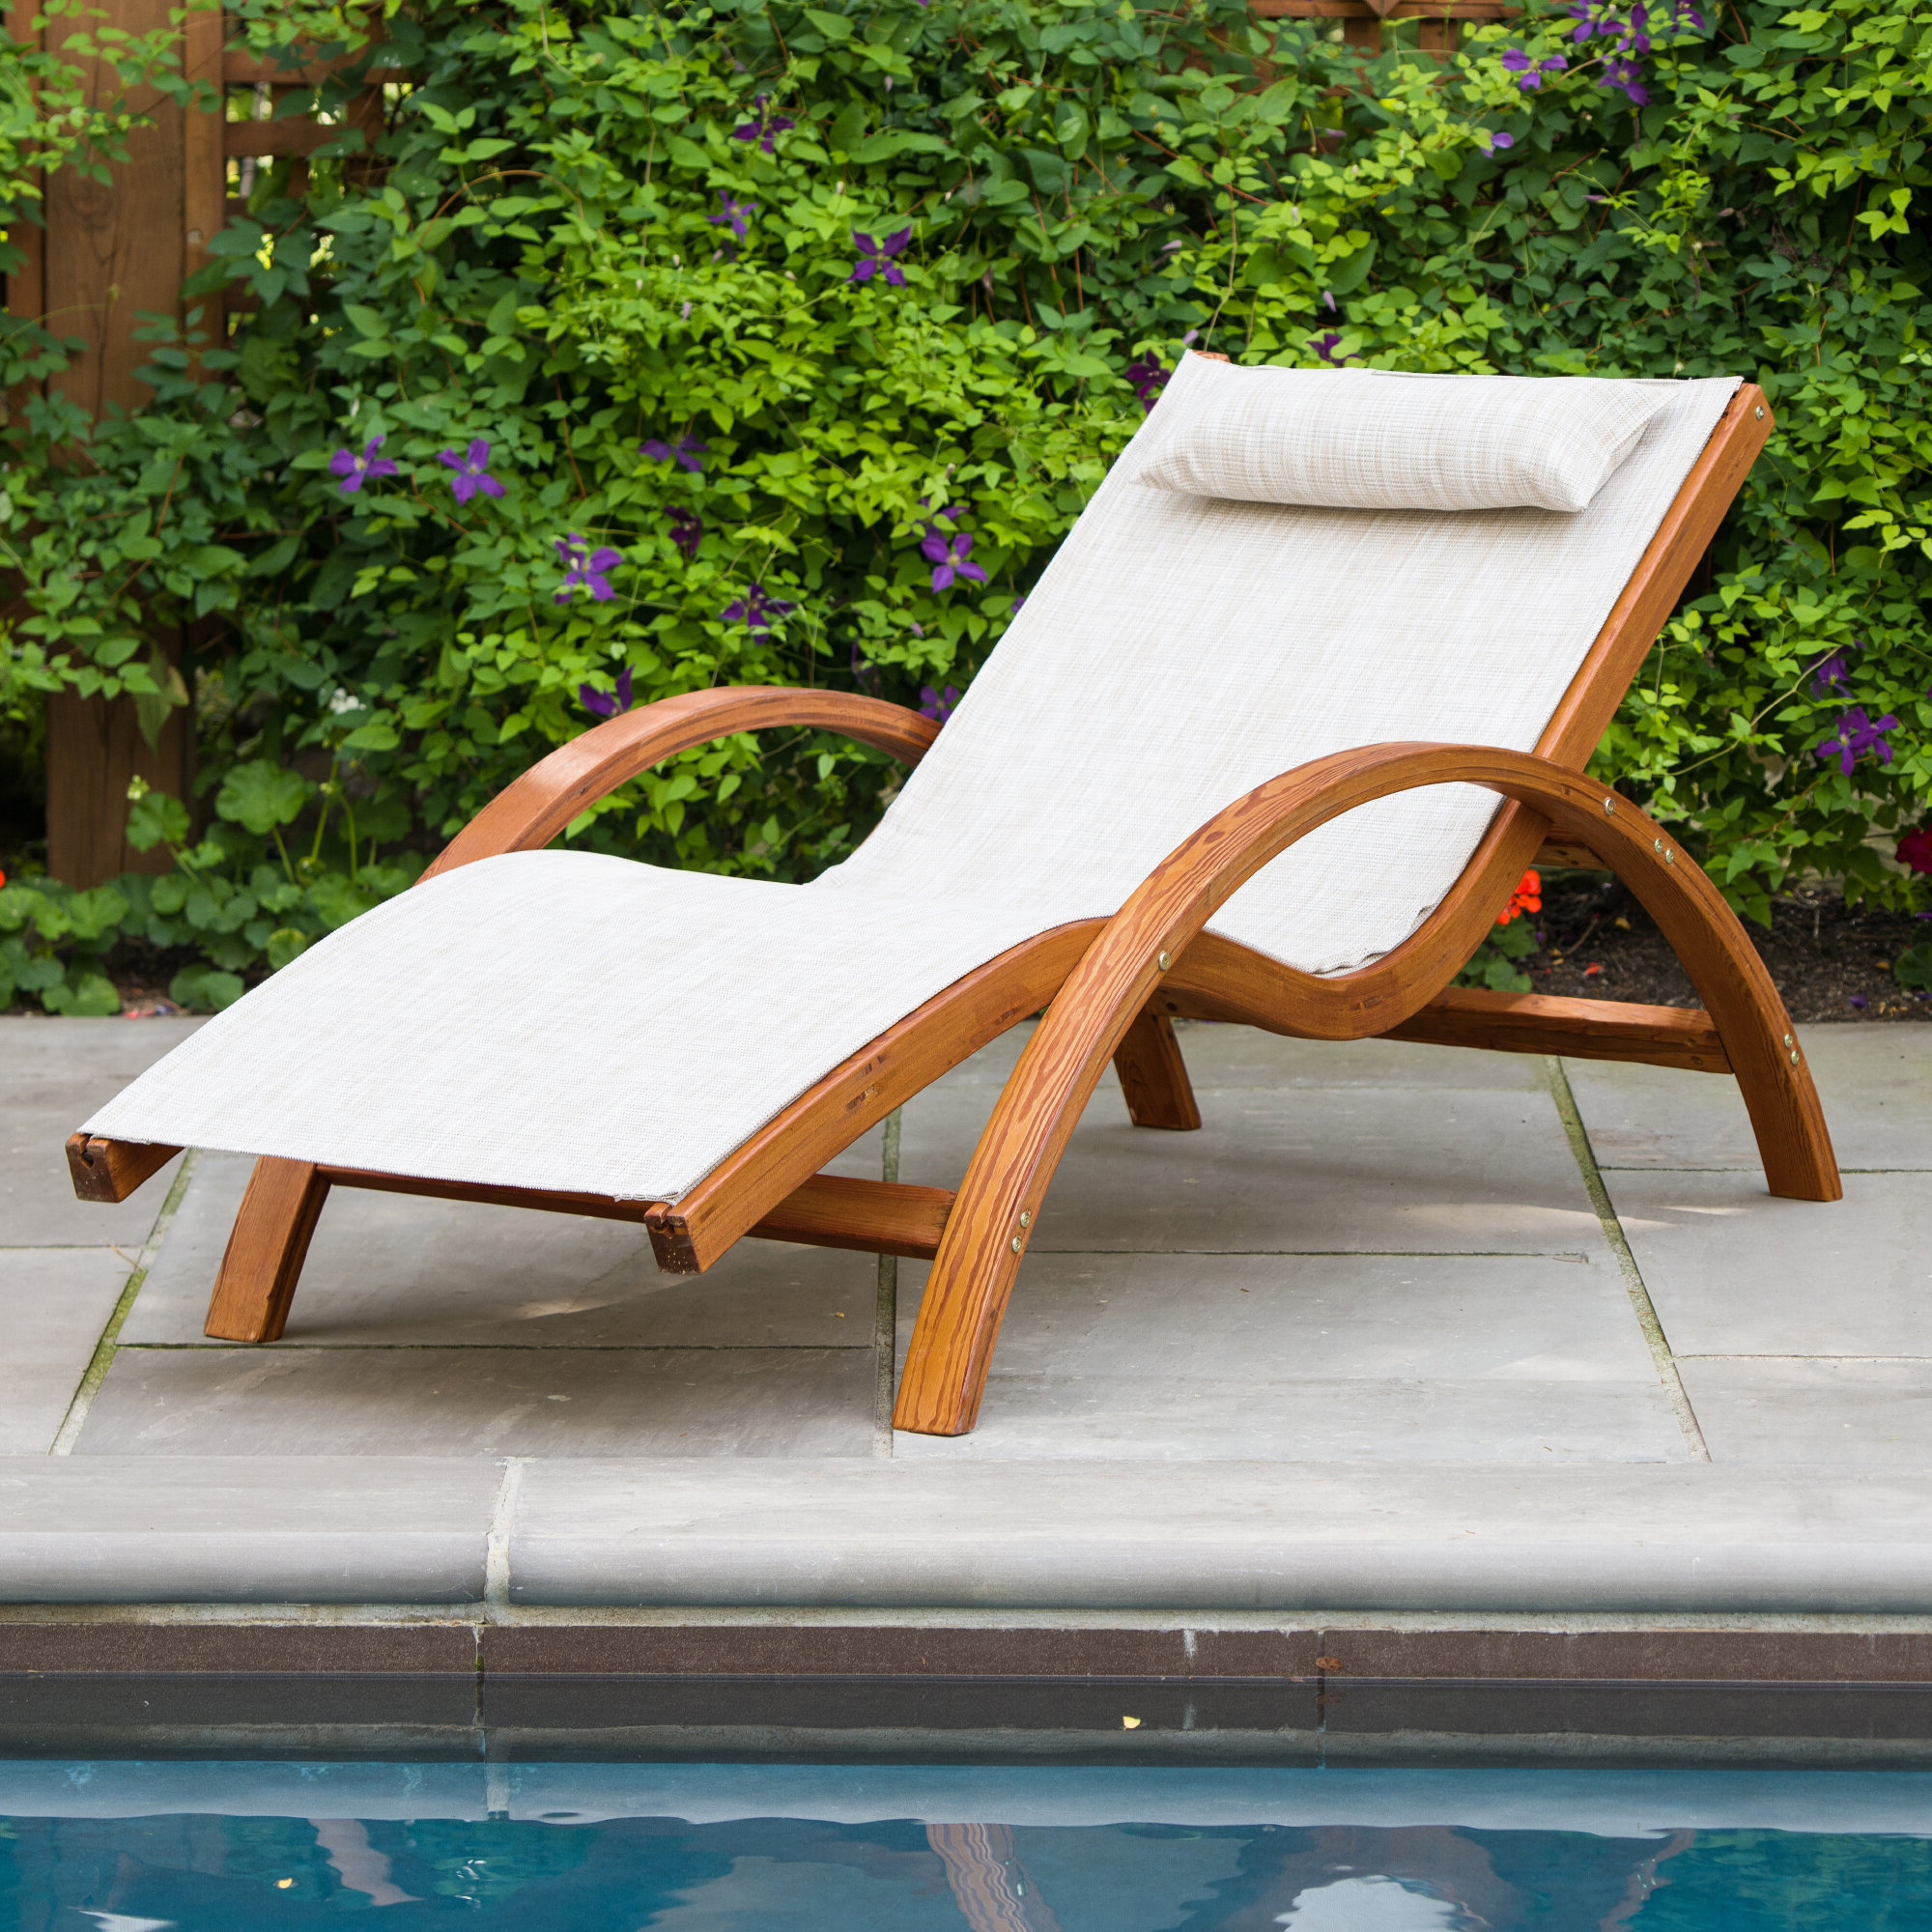 Sling Lounge Chair With Cushion Within Well Liked Outdoor Wood Sling Chairs (View 10 of 25)